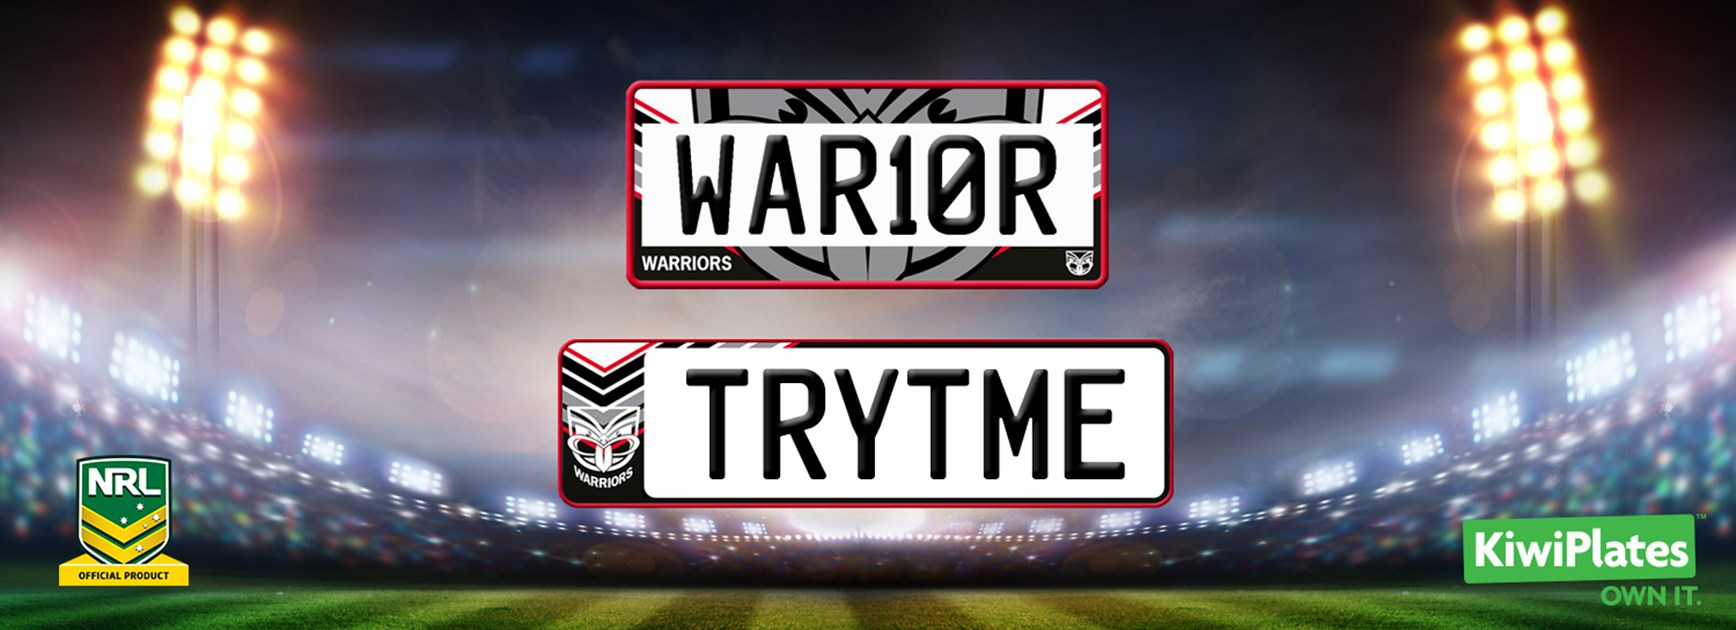 Customise your plates with the Vodafone Warriors